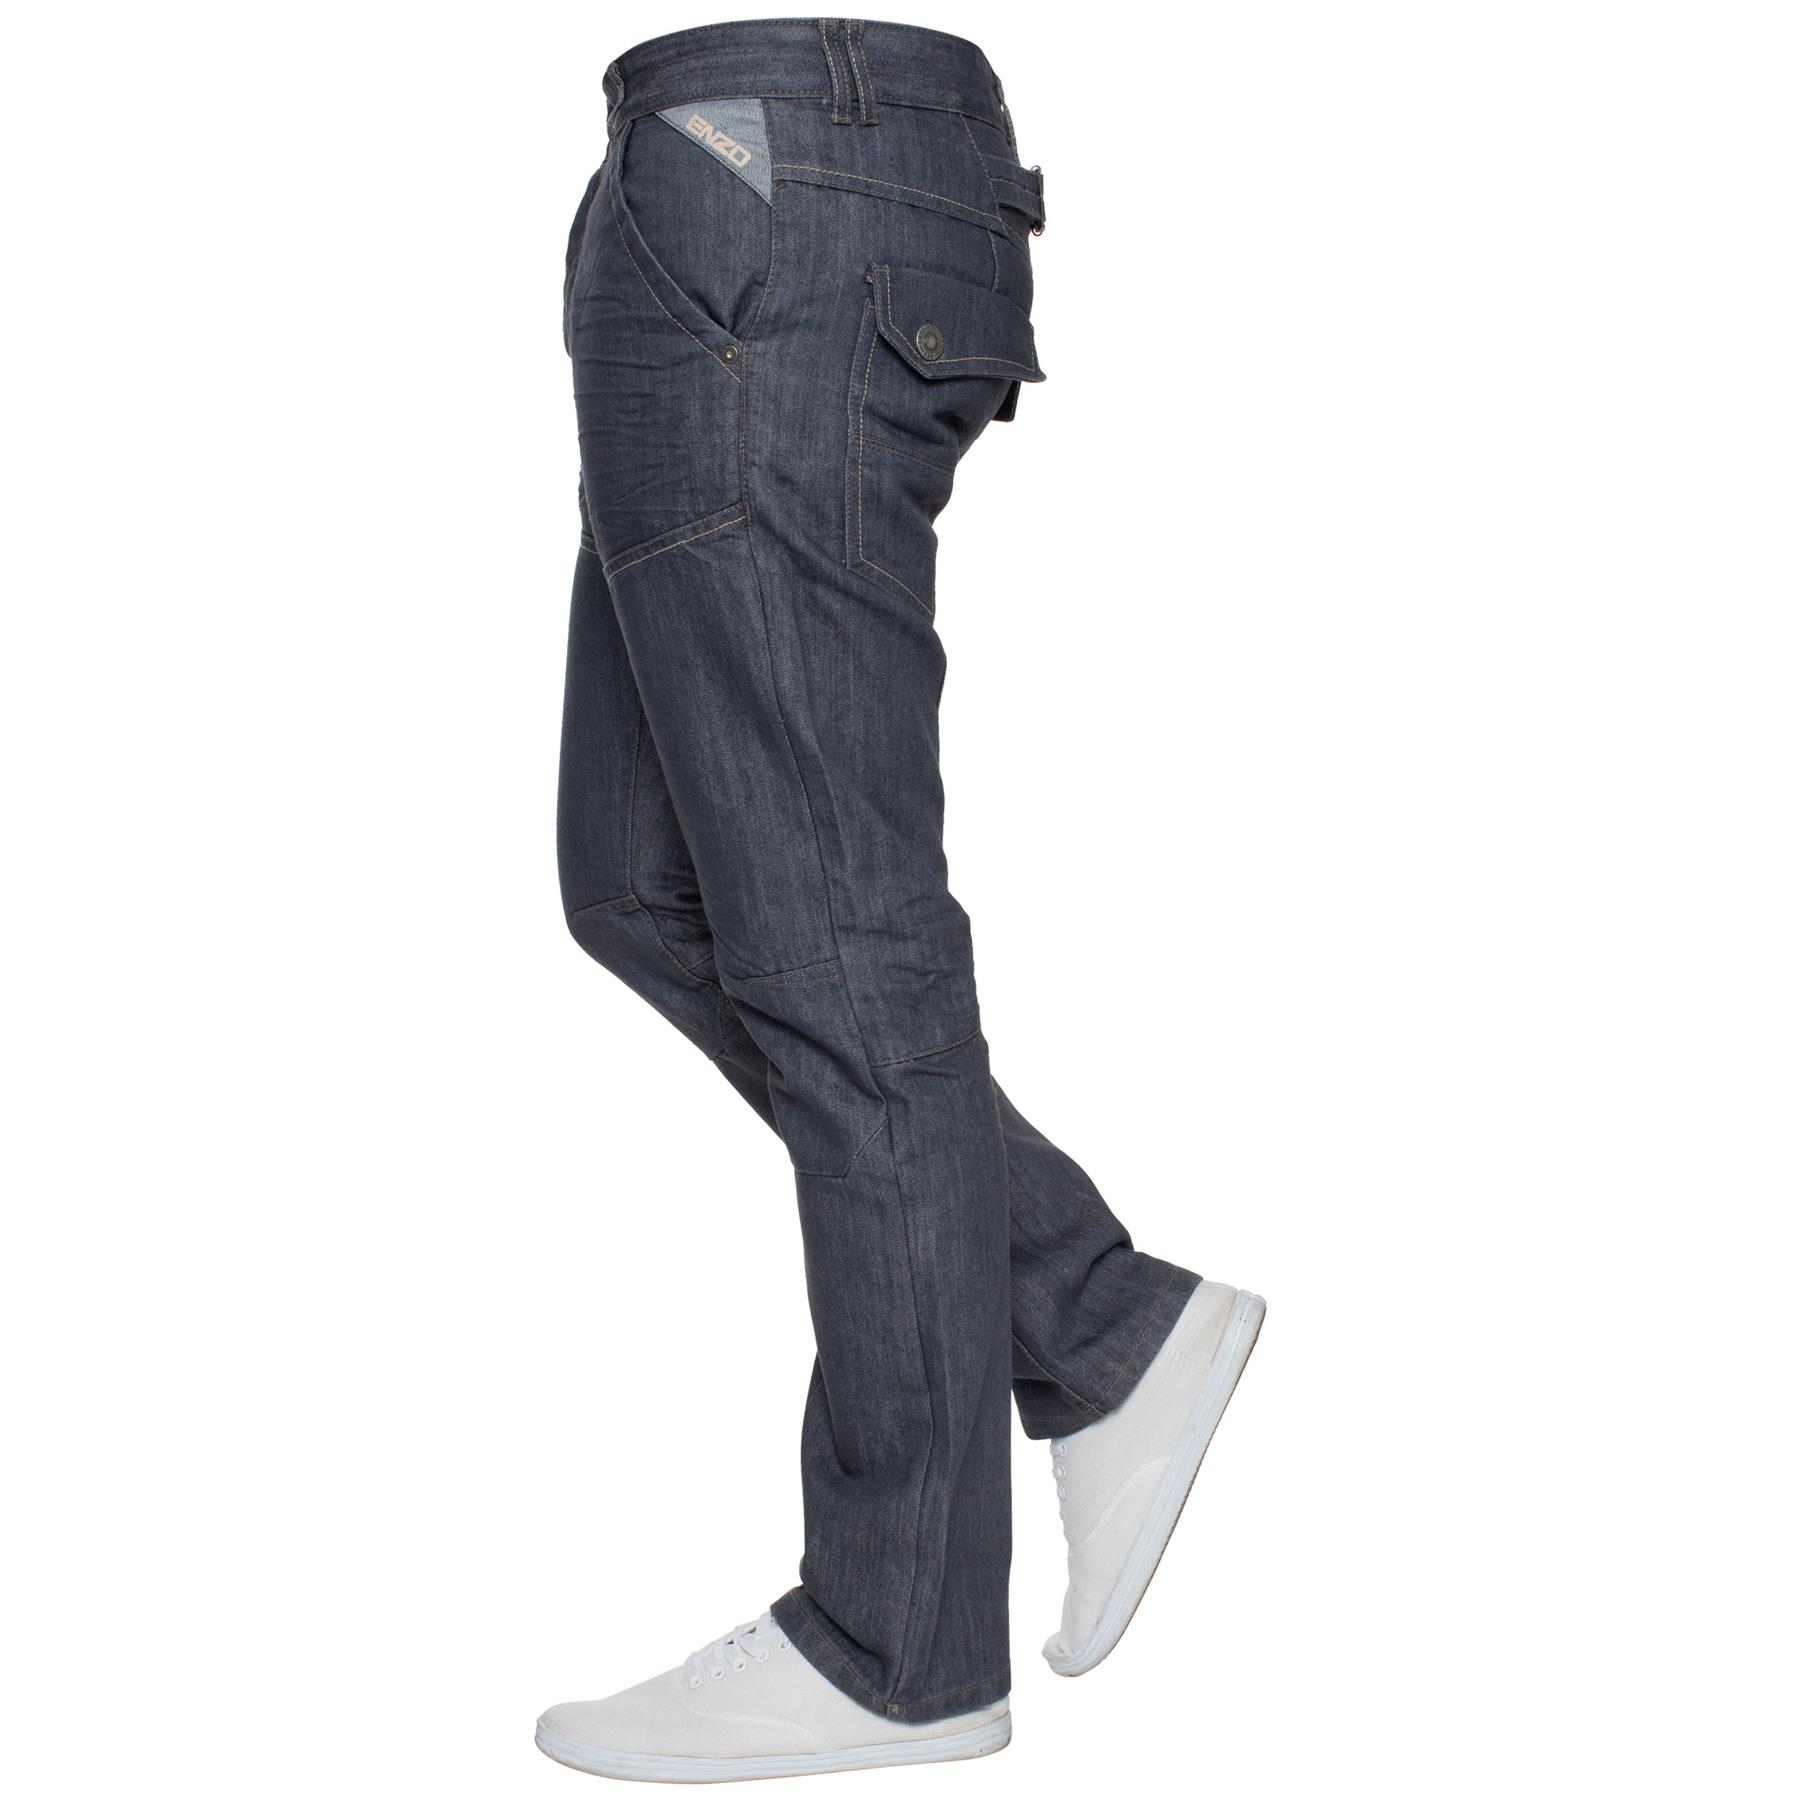 Enzo-Mens-Jeans-Big-Tall-Leg-King-Size-Denim-Pants-Chino-Trousers-Waist-44-034-60-034 miniature 89